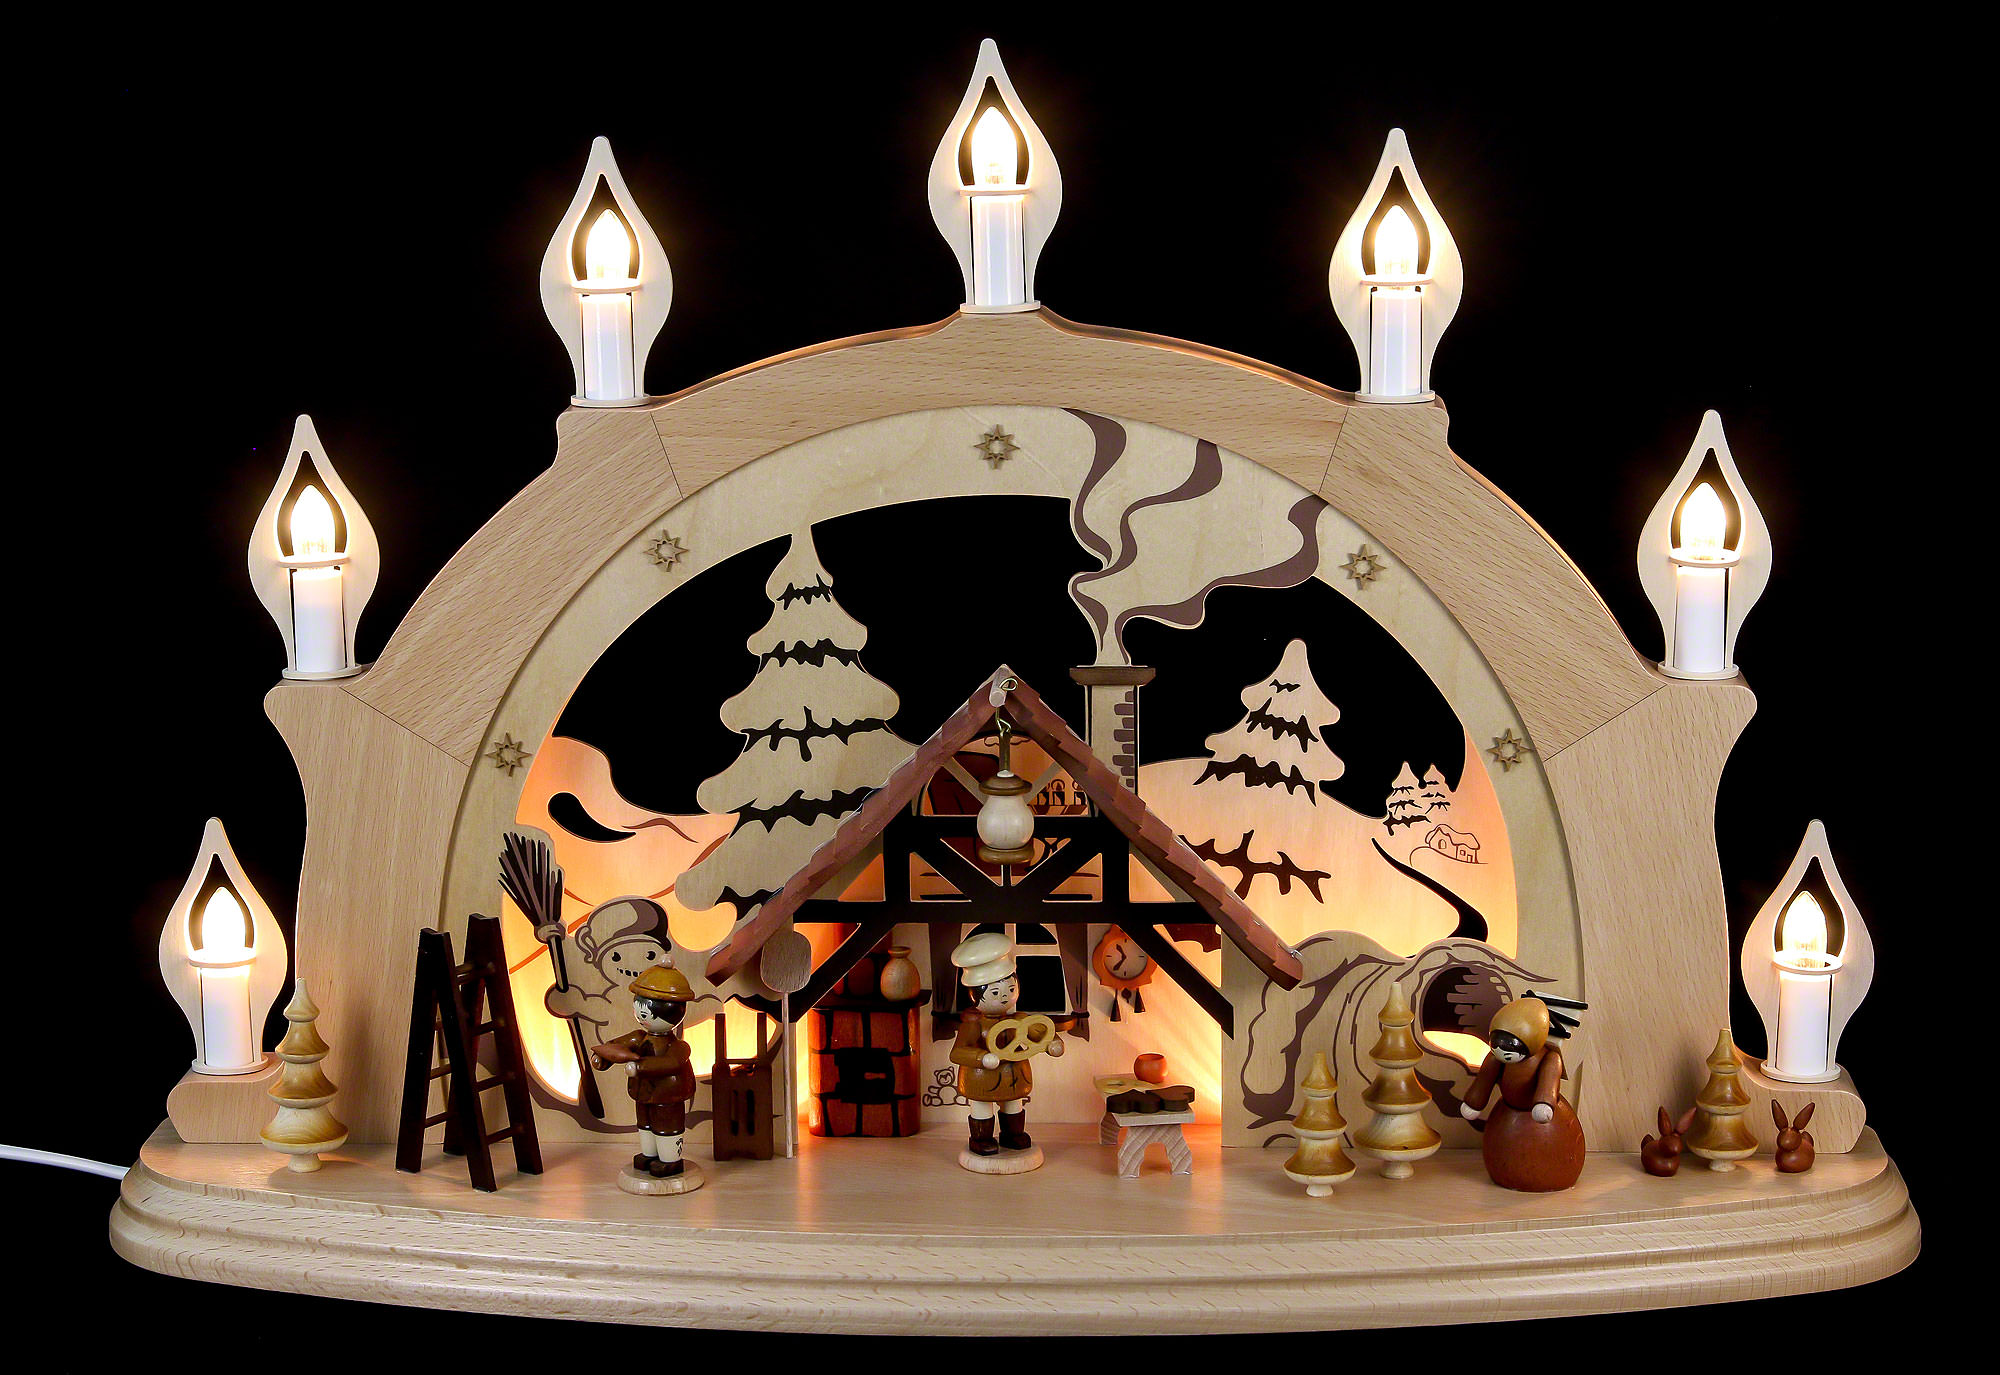 candle arch christmas parlor 57 38 15 cm 22 15 6in by. Black Bedroom Furniture Sets. Home Design Ideas